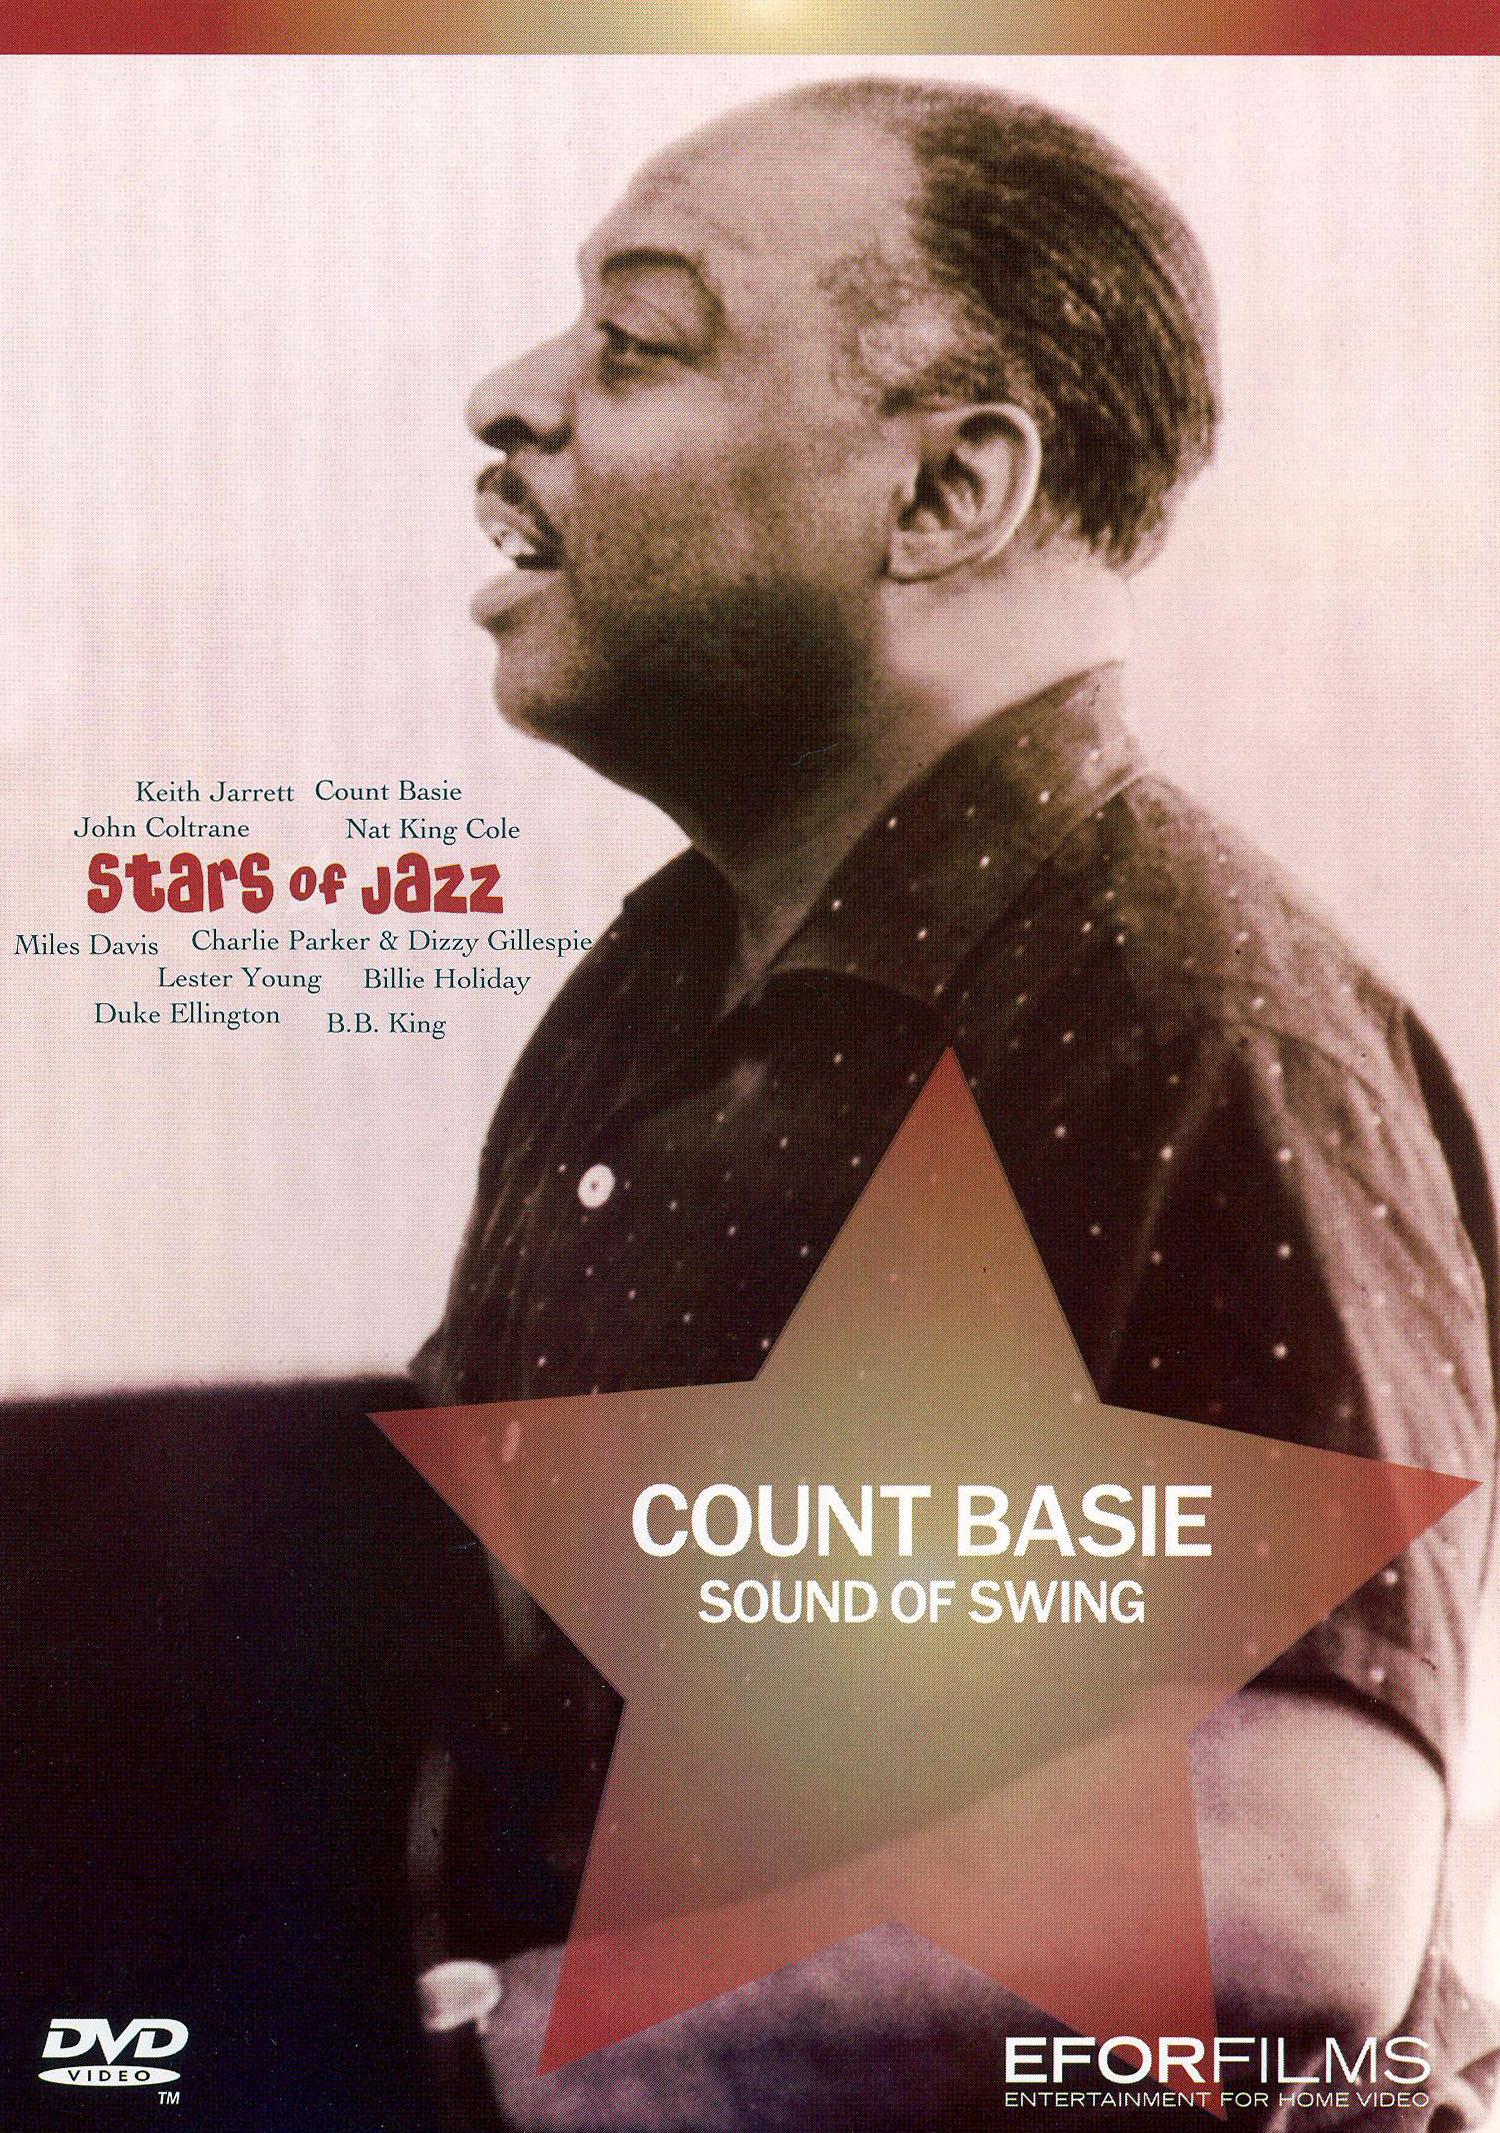 Count Basie: Sound of Swing